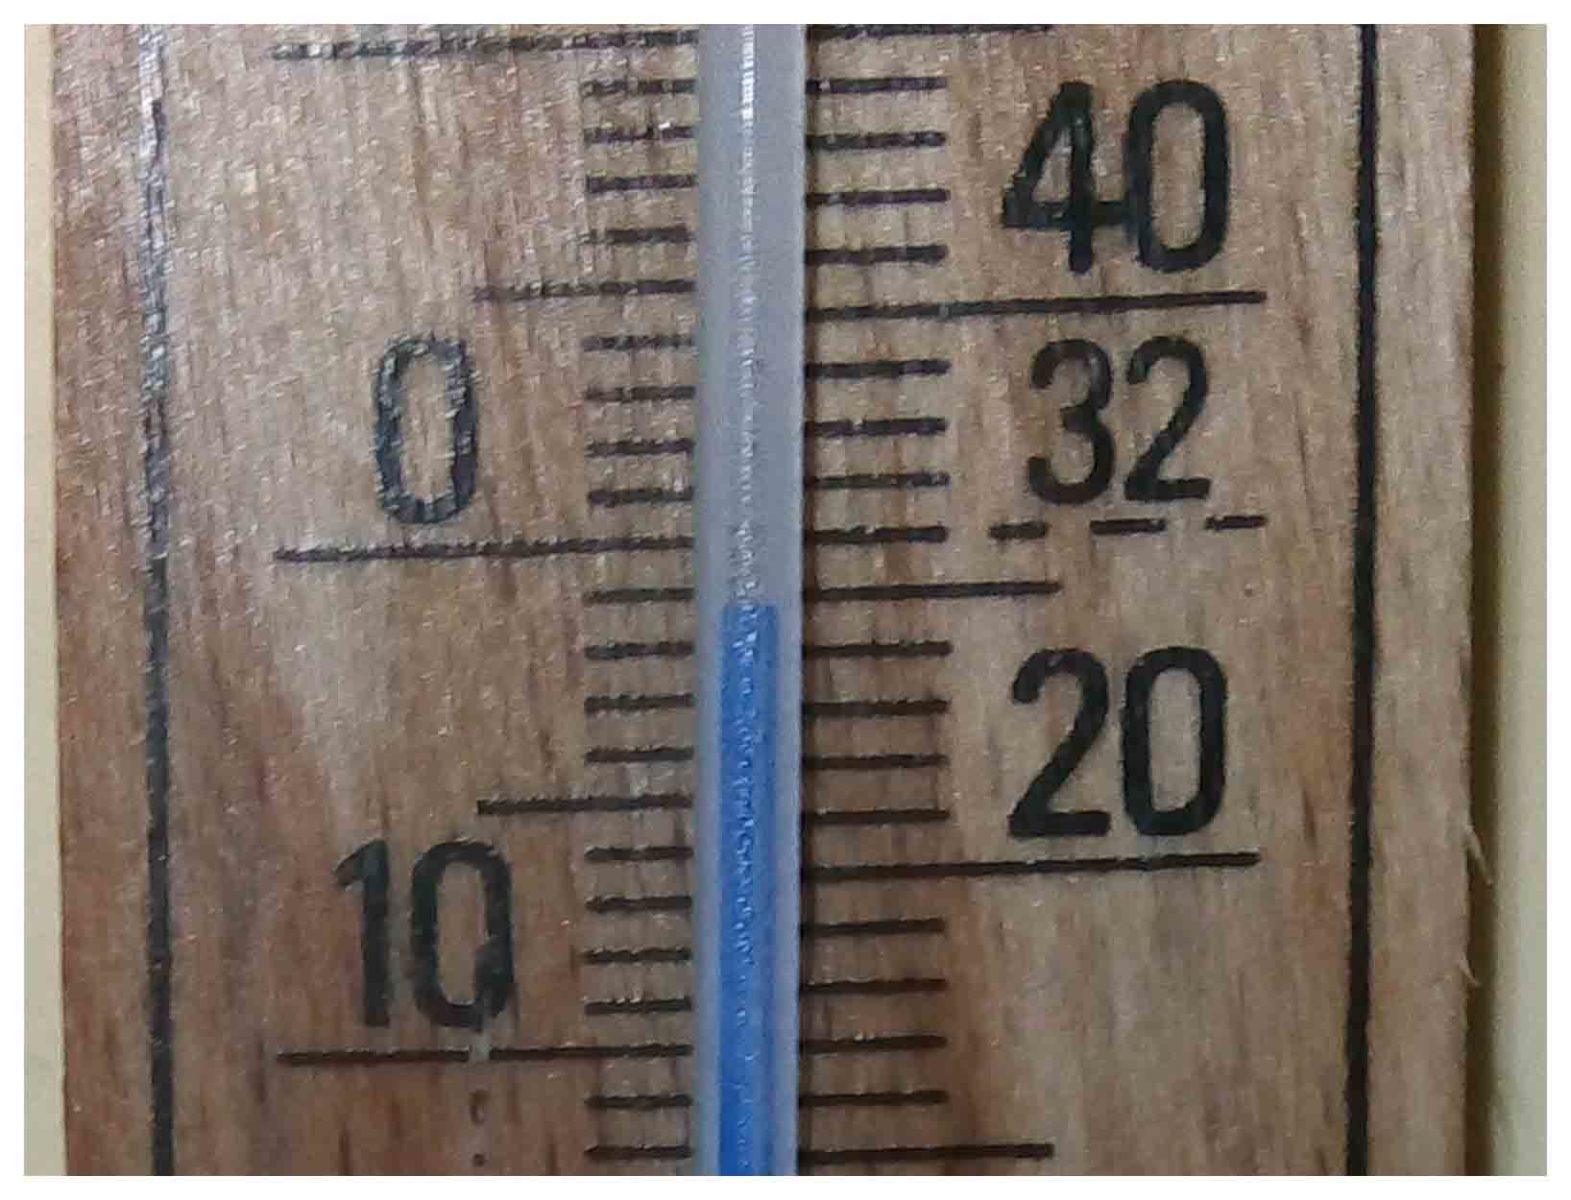 Thermometer image showing -2°C